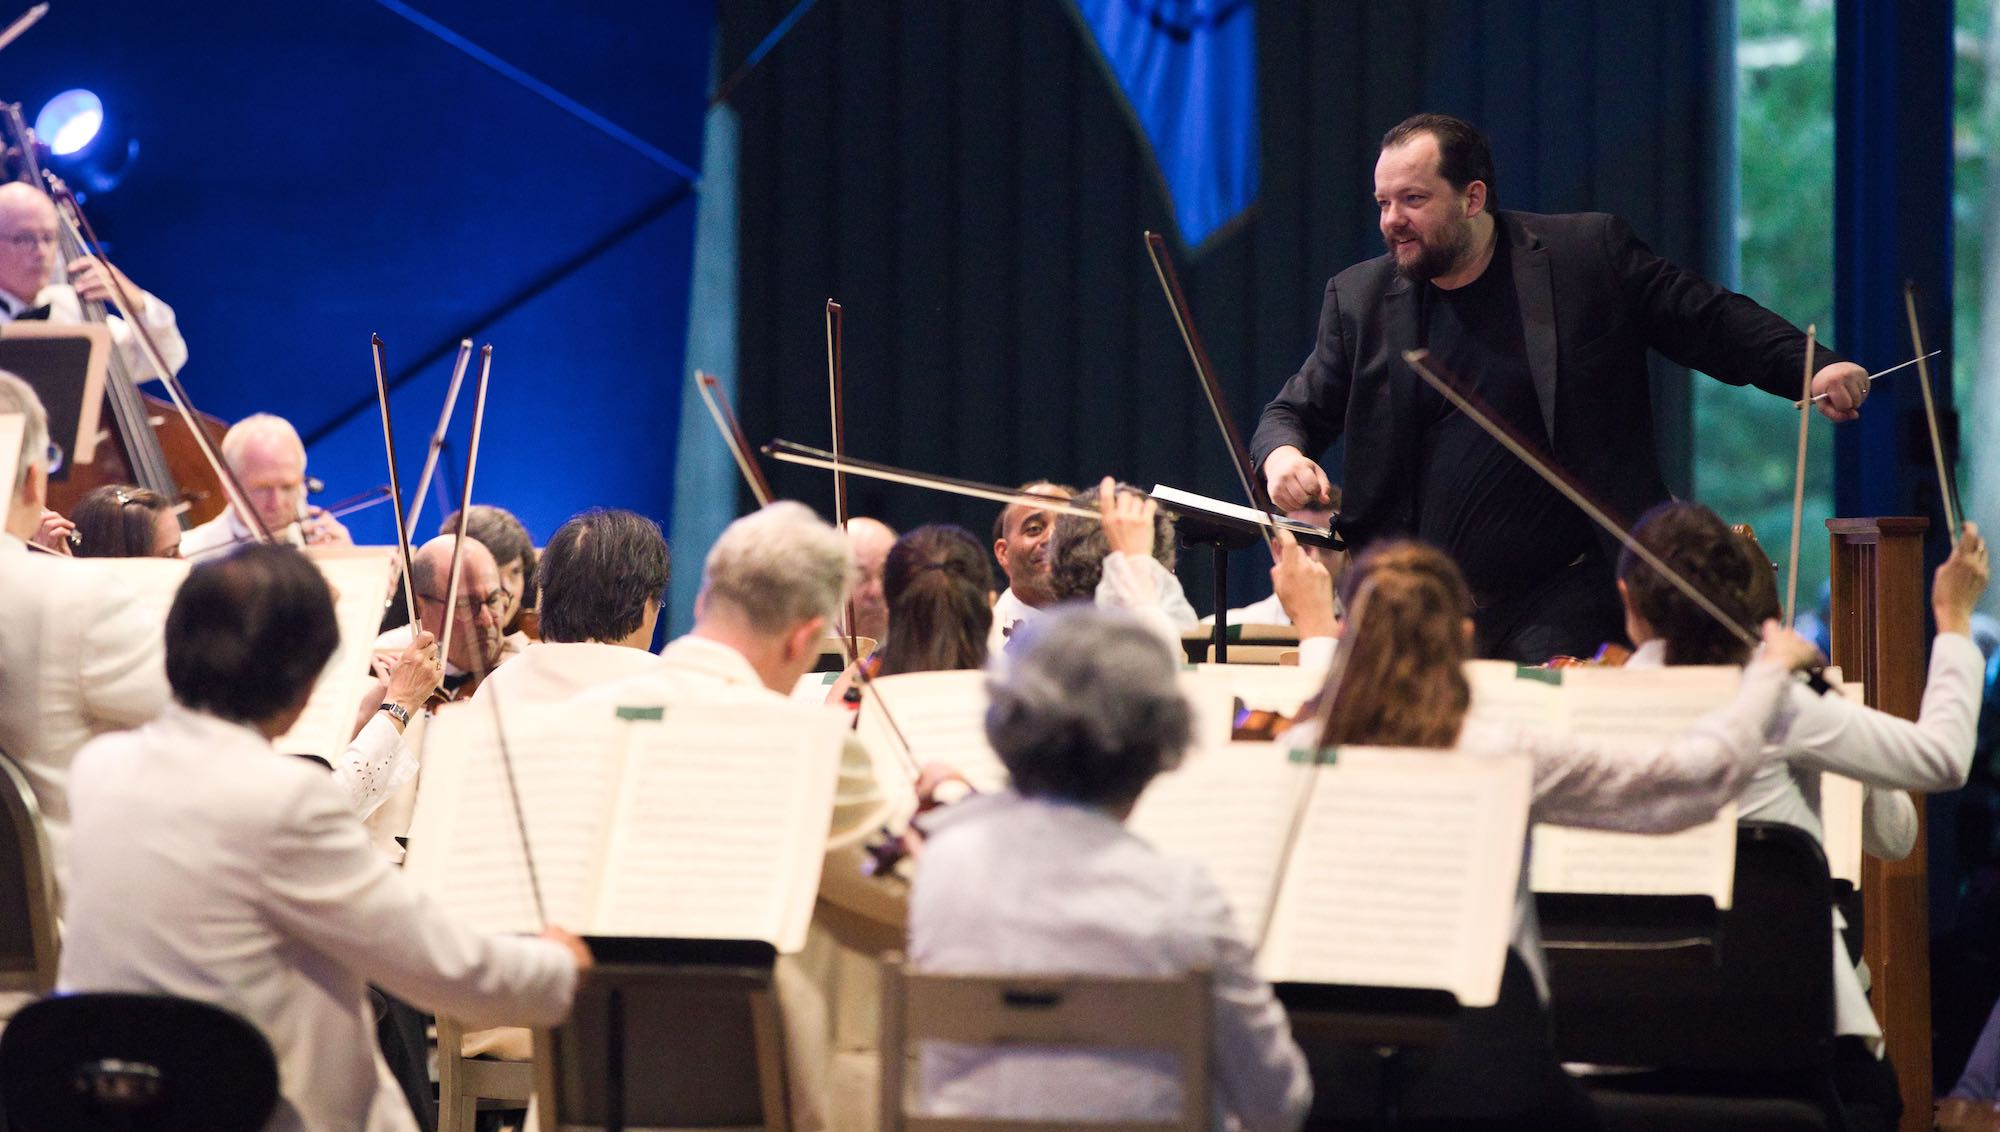 Andris Nelsons leads the Boston Symphony Orchestra as Tanglewood reopened Saturday, July 10. (Courtesy Hilary Scott)